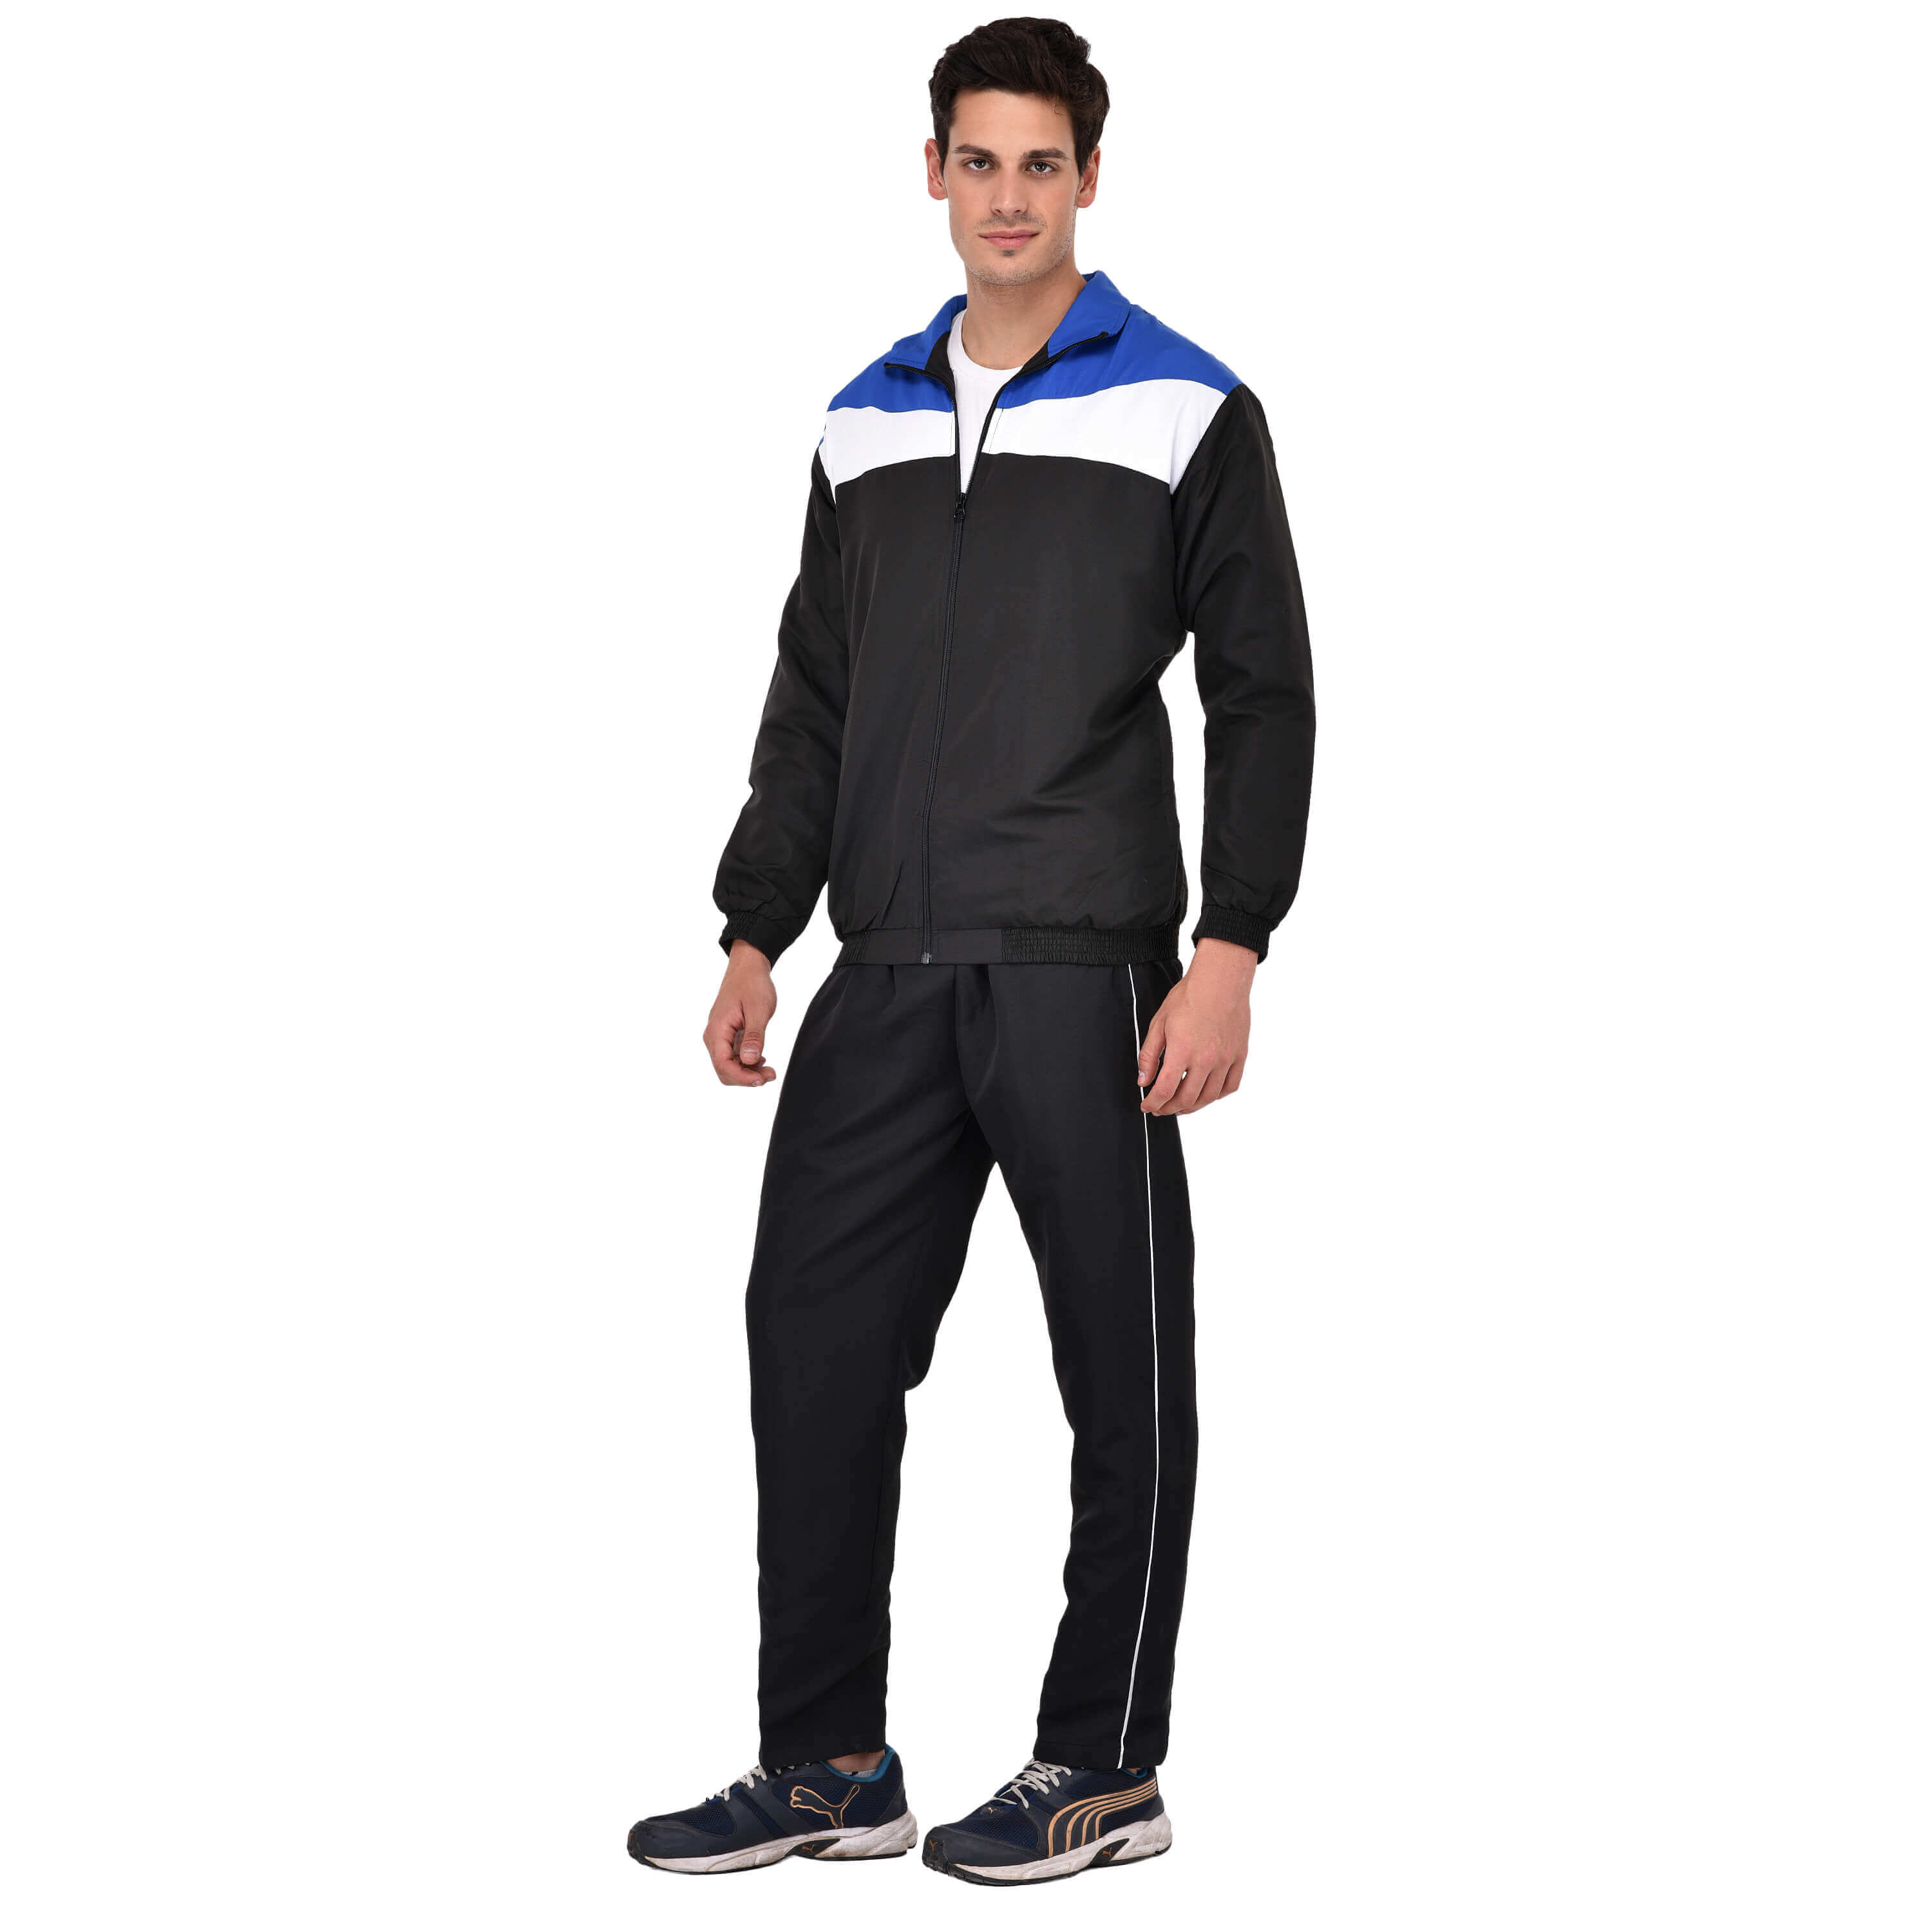 Tracksuit Set Manufacturers in Peru